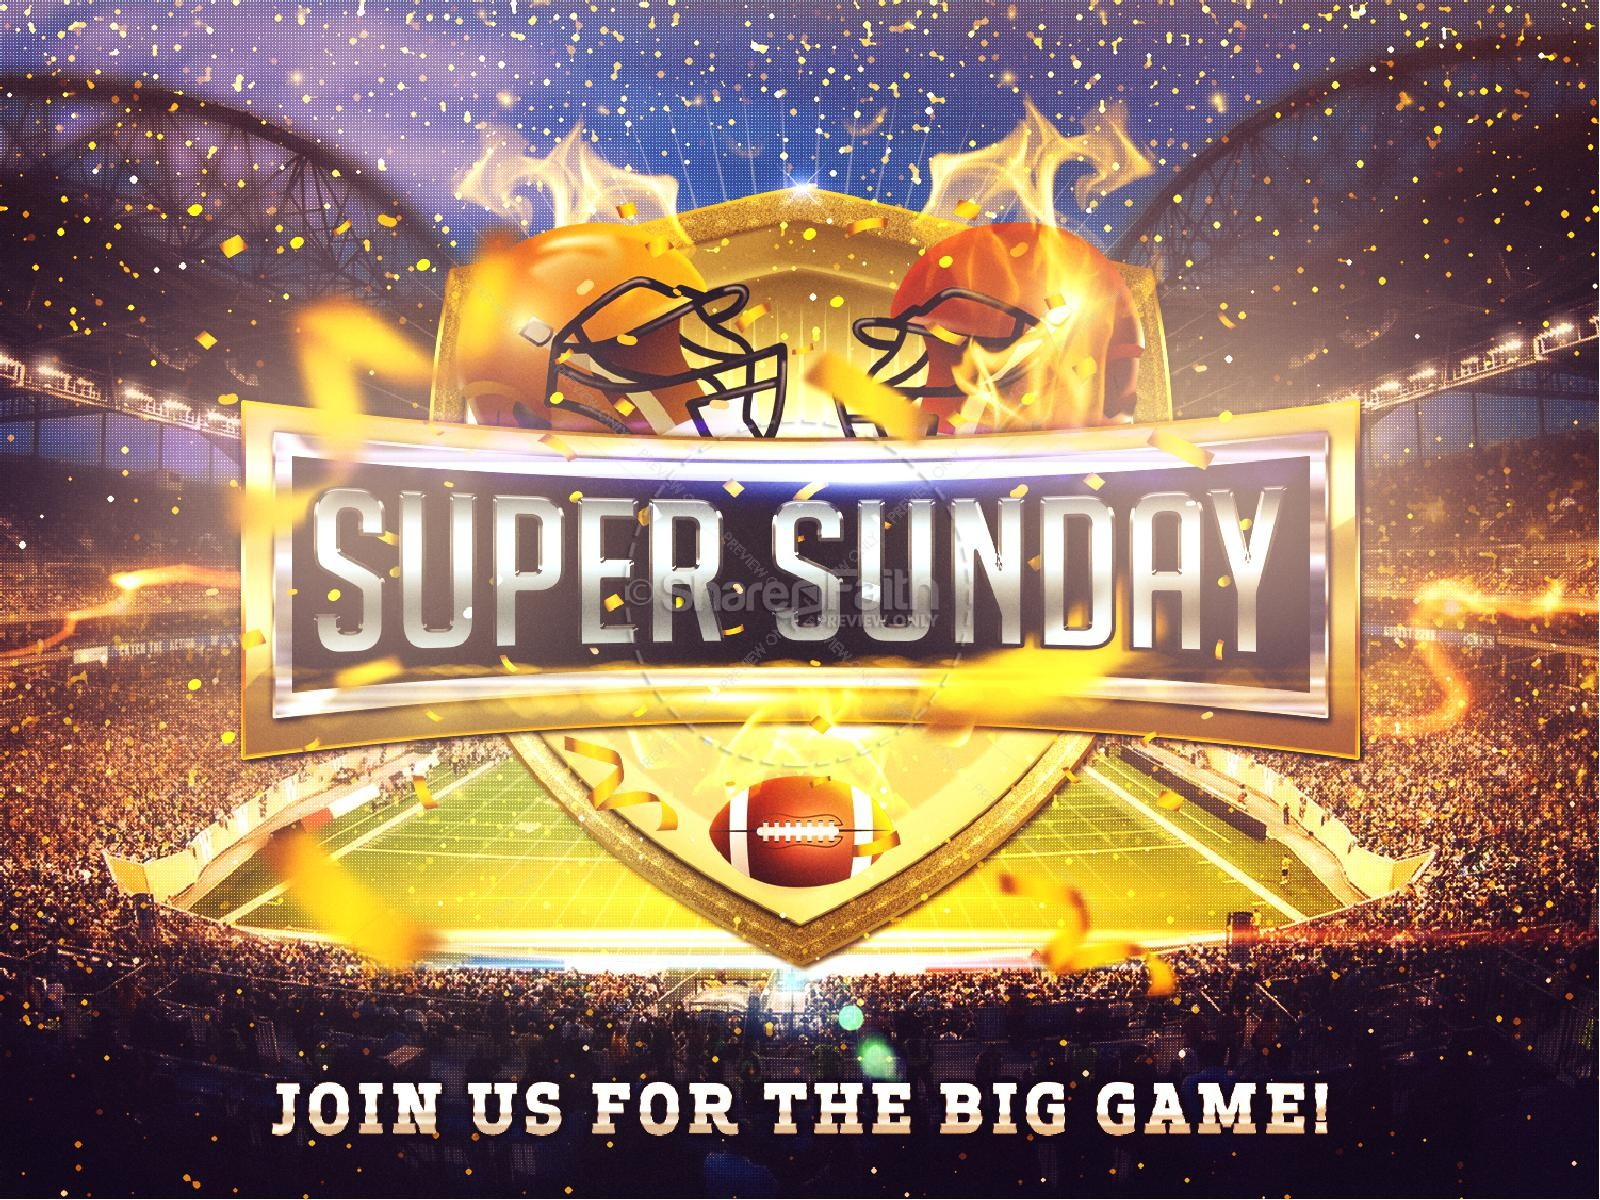 Super Sunday Stadium Graphic Design